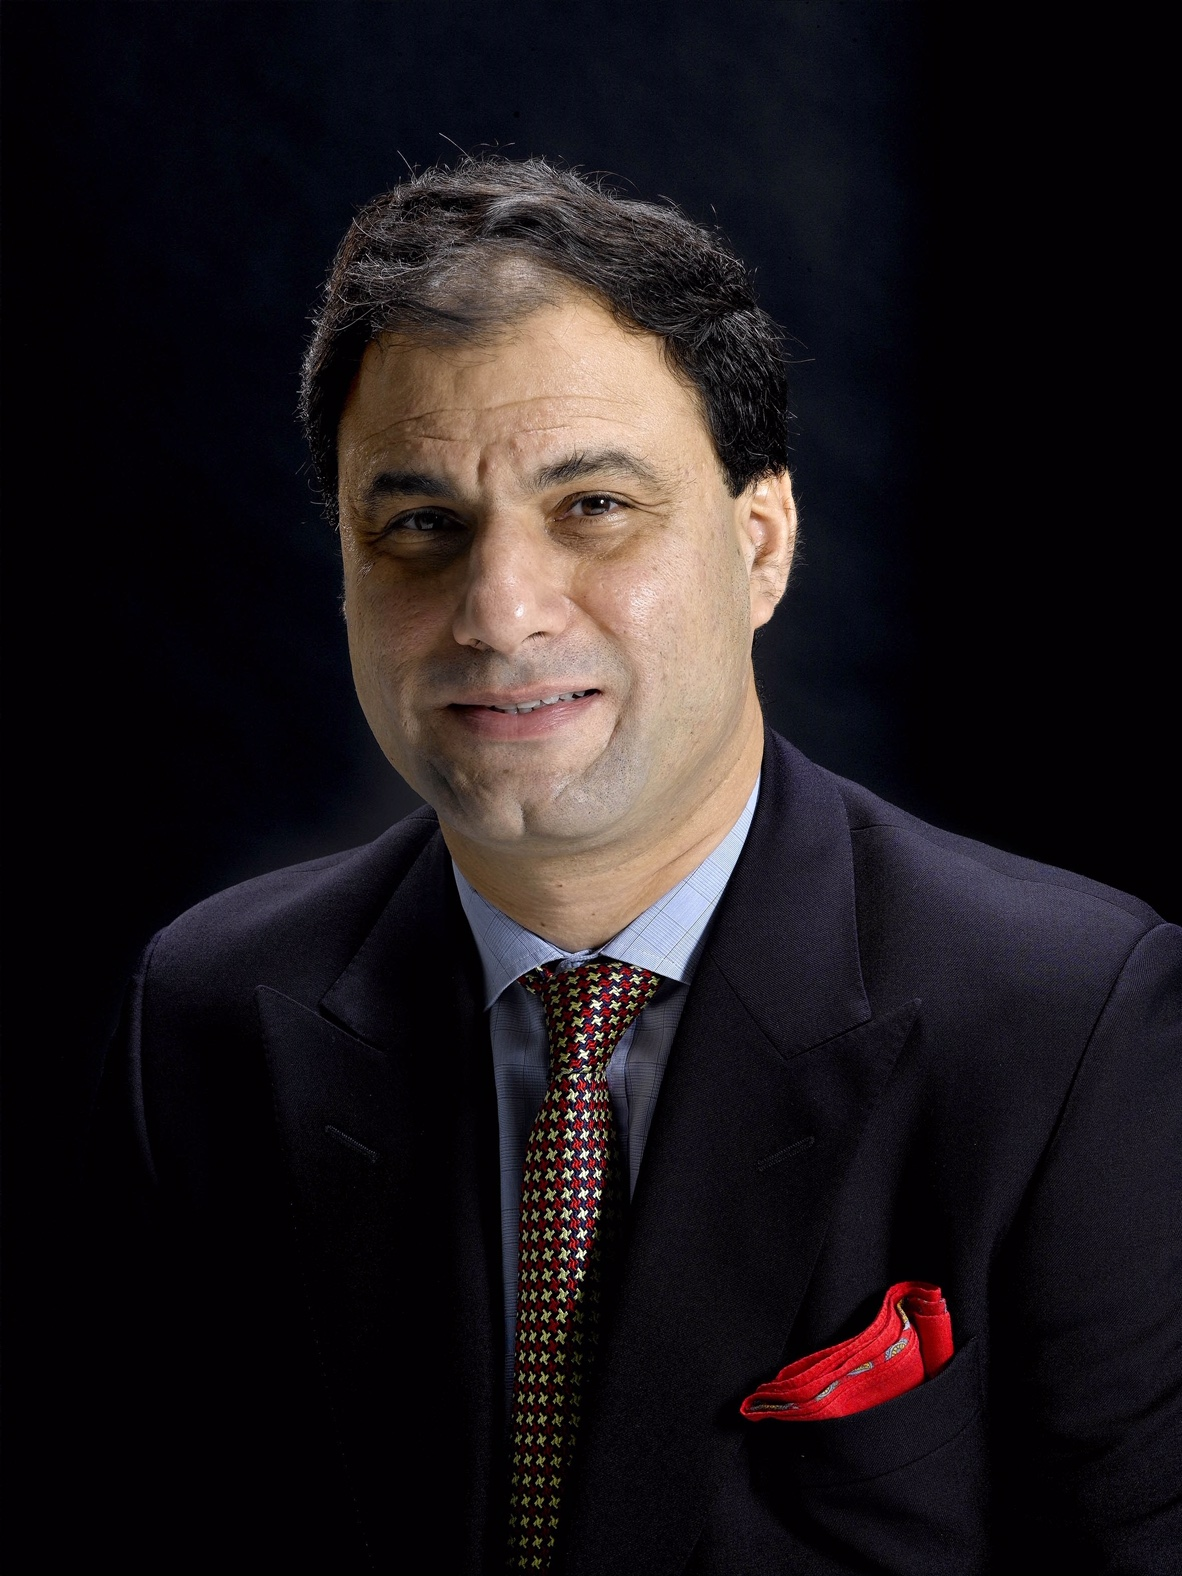 Lord Karan Bilimoria   Karan Bilimoria is the founder of Cobra Beer, Chairman of the Cobra Beer Partnership Limited, a Joint Venture with Molson Coors, and Chairman of Molson Coors Cobra India. Cobra has won 101 Monde Selection Gold medals. Lord Bilimoria is the Founding Chairman of the UK India Business Council, a Deputy Lieutenant of Greater London; he is one of the first two visiting entrepreneurs at the University of Cambridge; He is a founding member of the Prime Minister of India's Global Advisory Council. In 2006, Karan Bilimoria was appointed the Lord Bilimoria of Chelsea, making him the first ever Zoroastrian Parsi to sit in the House of Lords. In 2008 he was awarded the Pravasi Bharti Samman by the President of India. He is an honorary fellow of Sidney Sussex College Cambridge and Chairman of the Advisory Board of the Judge Business School, Cambridge University.  He qualified as a Chartered Accountant with Ernst & Young and graduated in law from the University of Cambridge. He is also an alumnus through executive education of the Cranfield School of Management, the London Business School and the Harvard Business School. In July 2014, he was installed as the seventh Chancellor of the University of Birmingham, making him the first Indian-born Chancellor of a Russell Group University in Great Britain, and he is the President of the UK Council for International Students Affairs (UKCISA). Since 2017 Lord Bilimoria has been a Bynum Tudor Fellow at Kellogg College, University of Oxford.